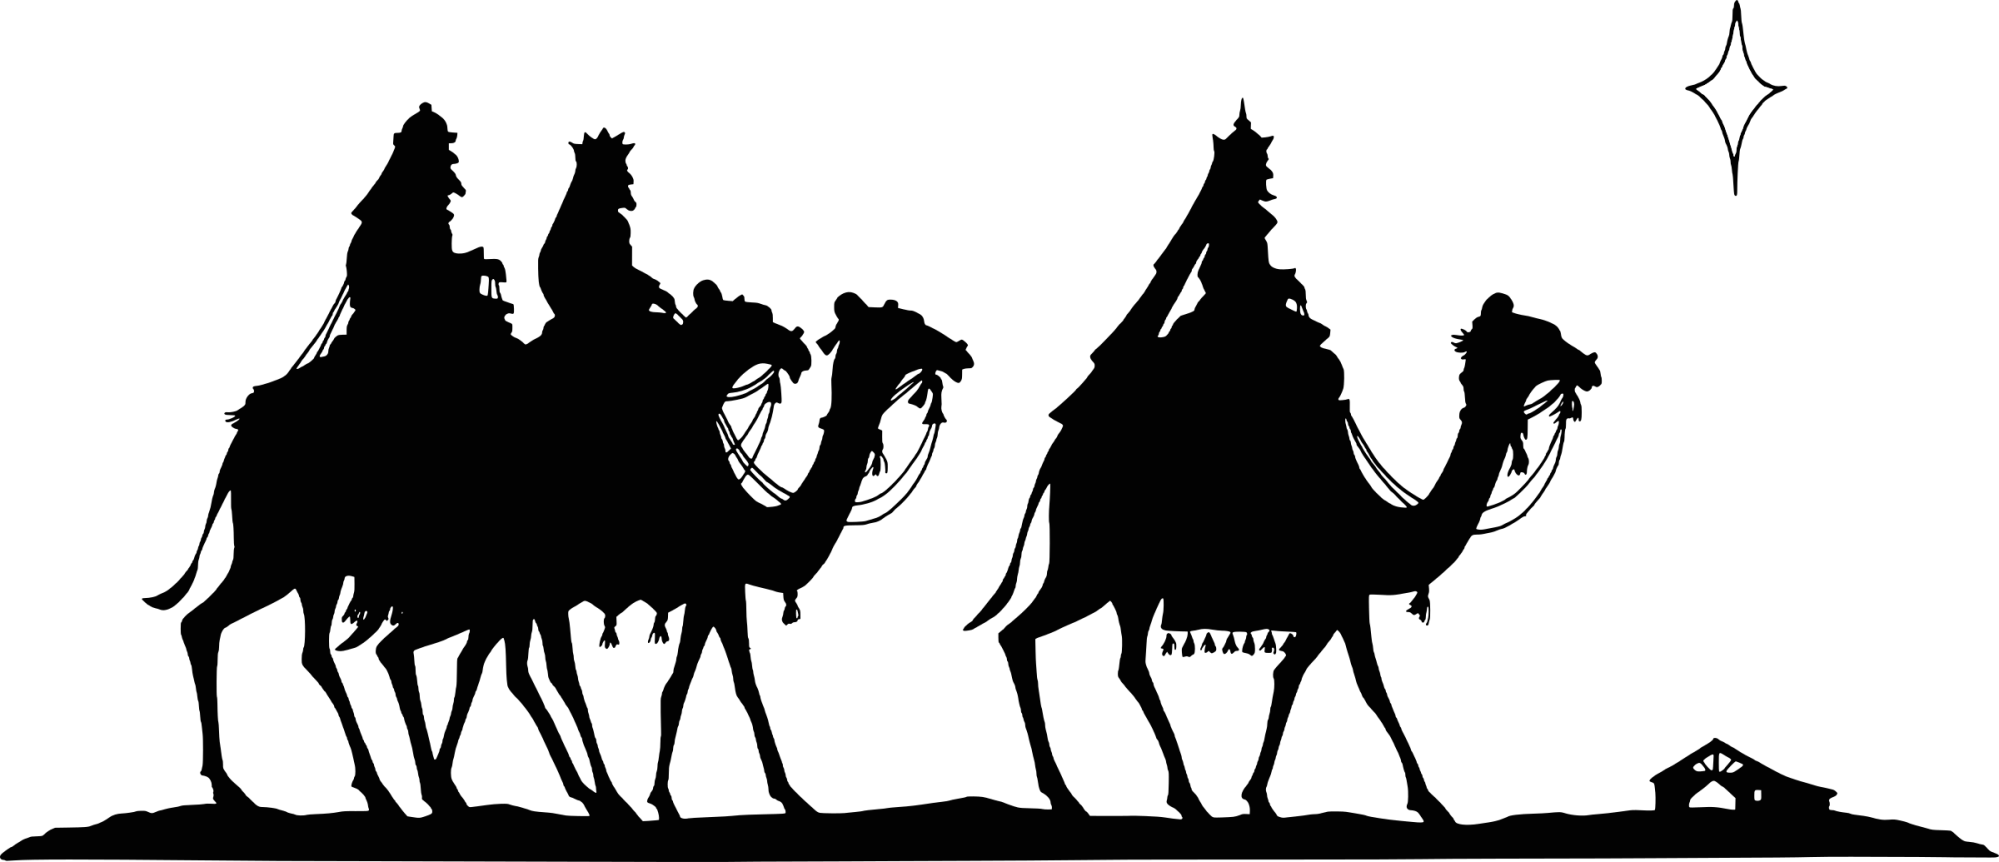 hight resolution of pin camel clipart wise man 13 wise man hd png